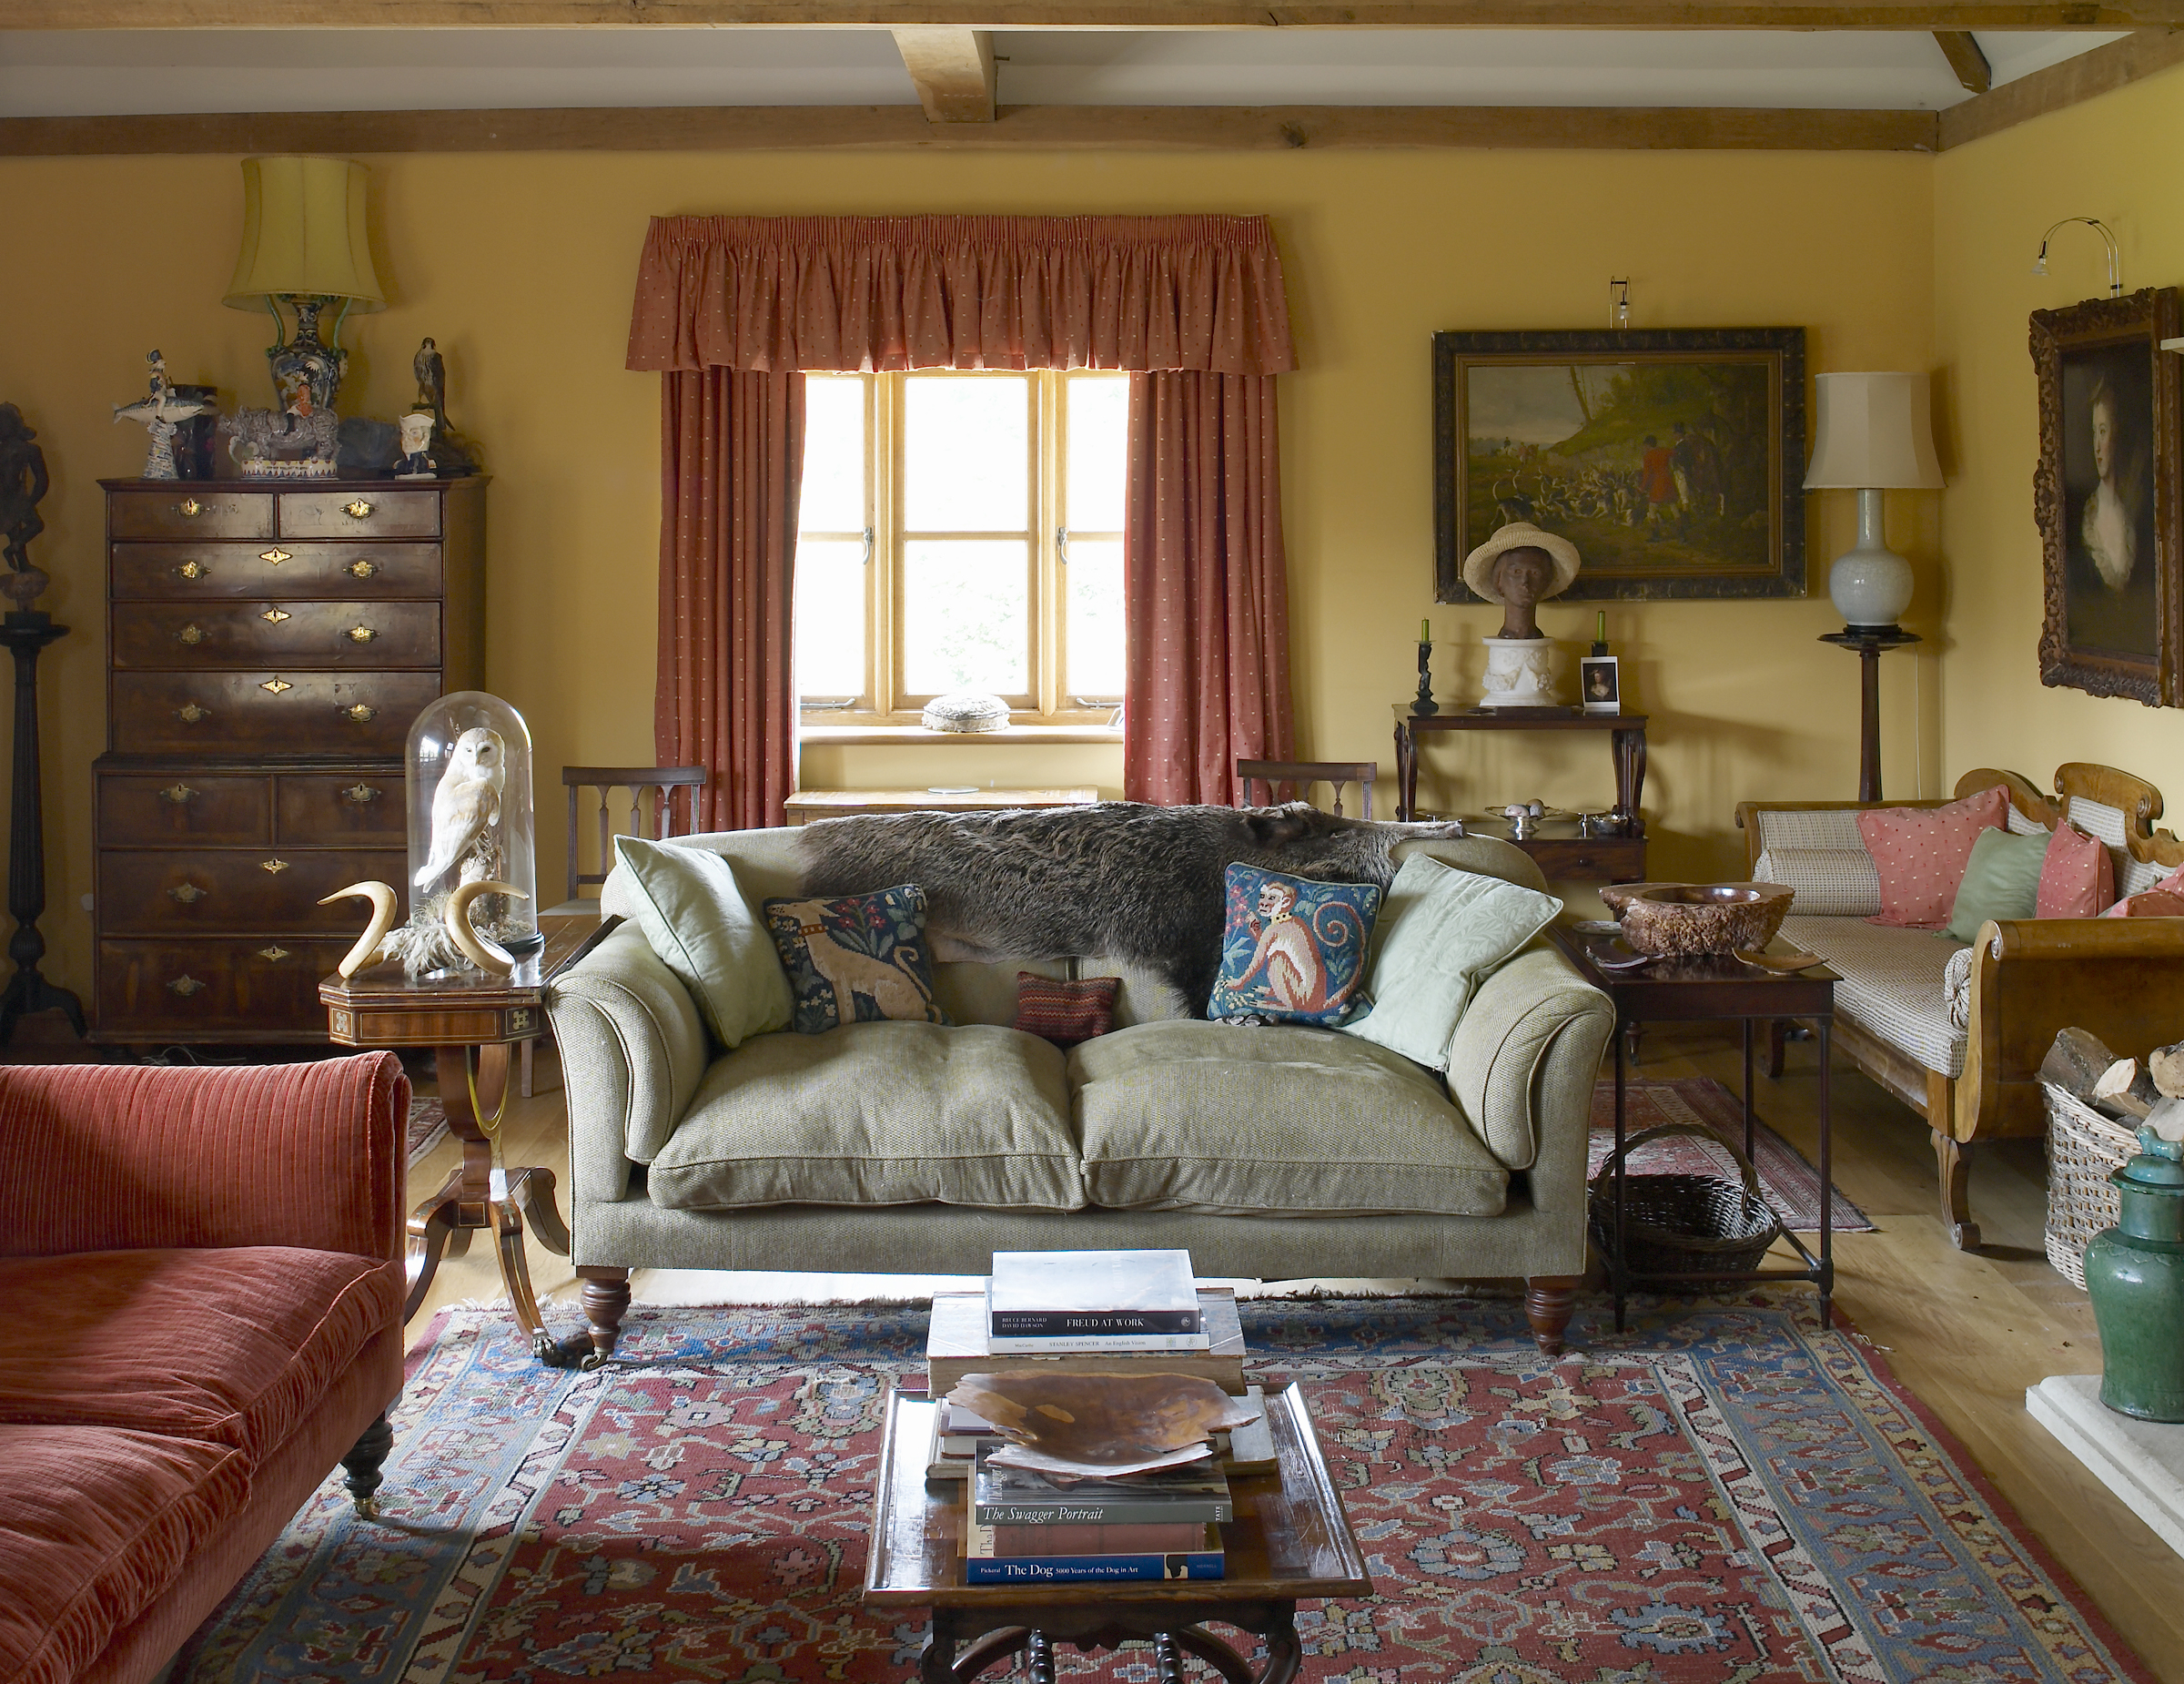 Arts & Crafts farmhouse interior, Hampshire